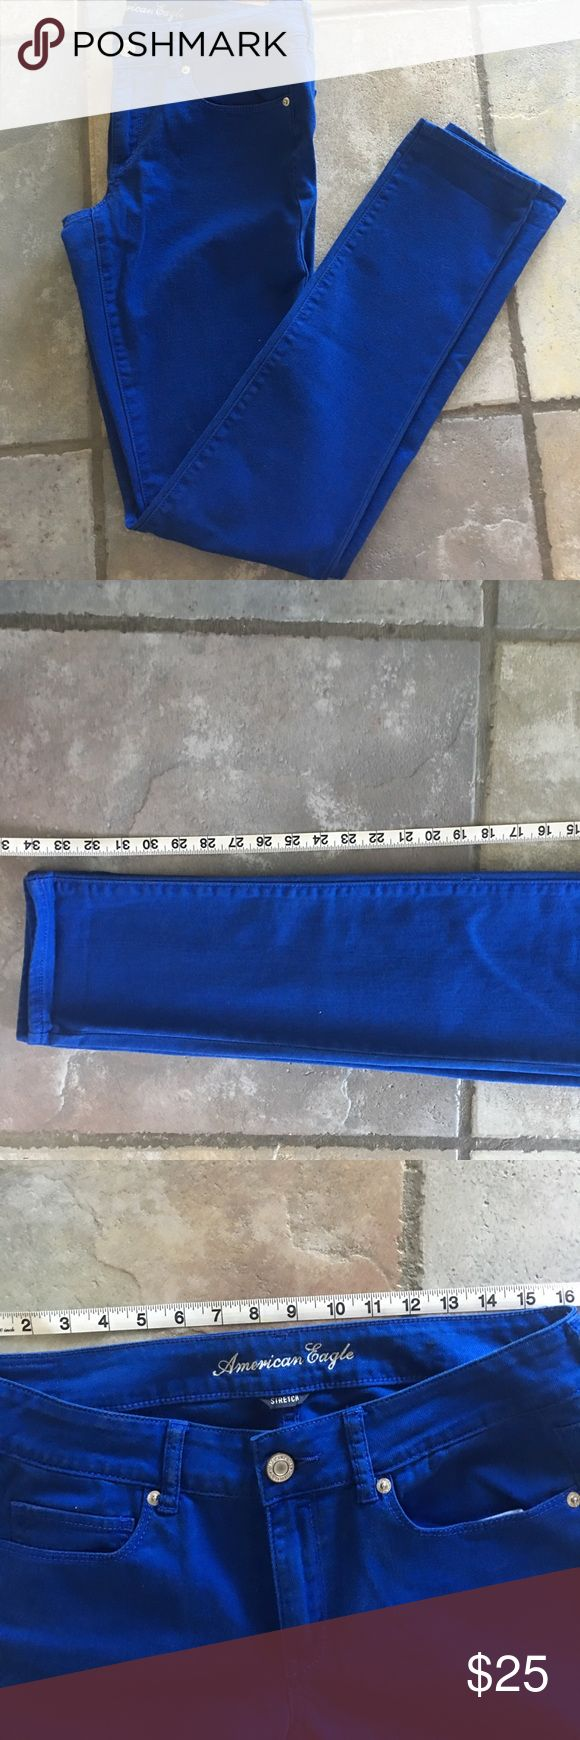 American Eagle skinny pants size 12 extra long American eagle blue skinny pant size 12 extra long by American Eagle. Waist and inseam measurements picture. I do offer discounts on bundles. American Eagle Outfitters Pants Skinny